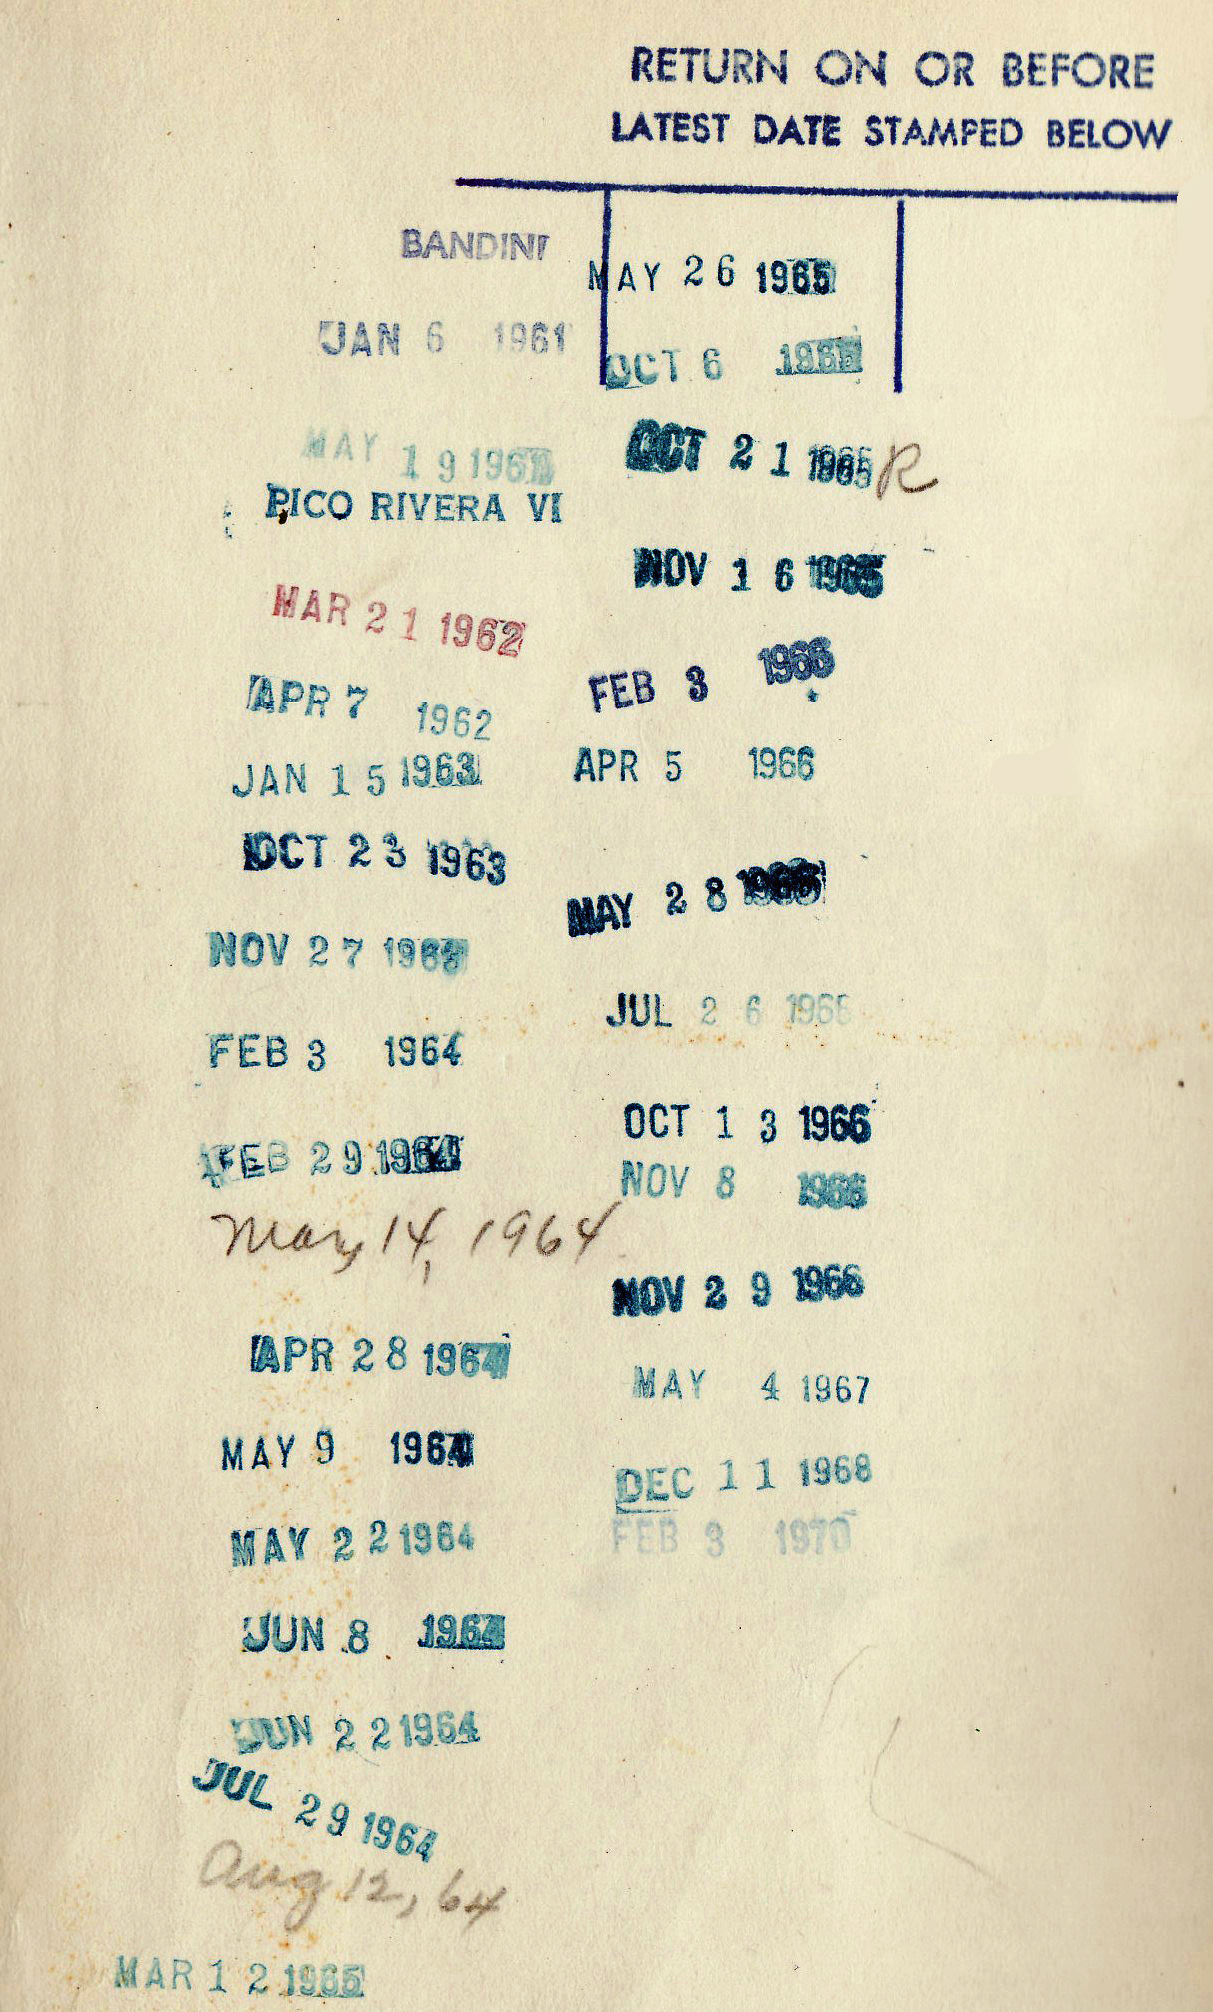 Picture of a sheet of paper with numerous stamped dates